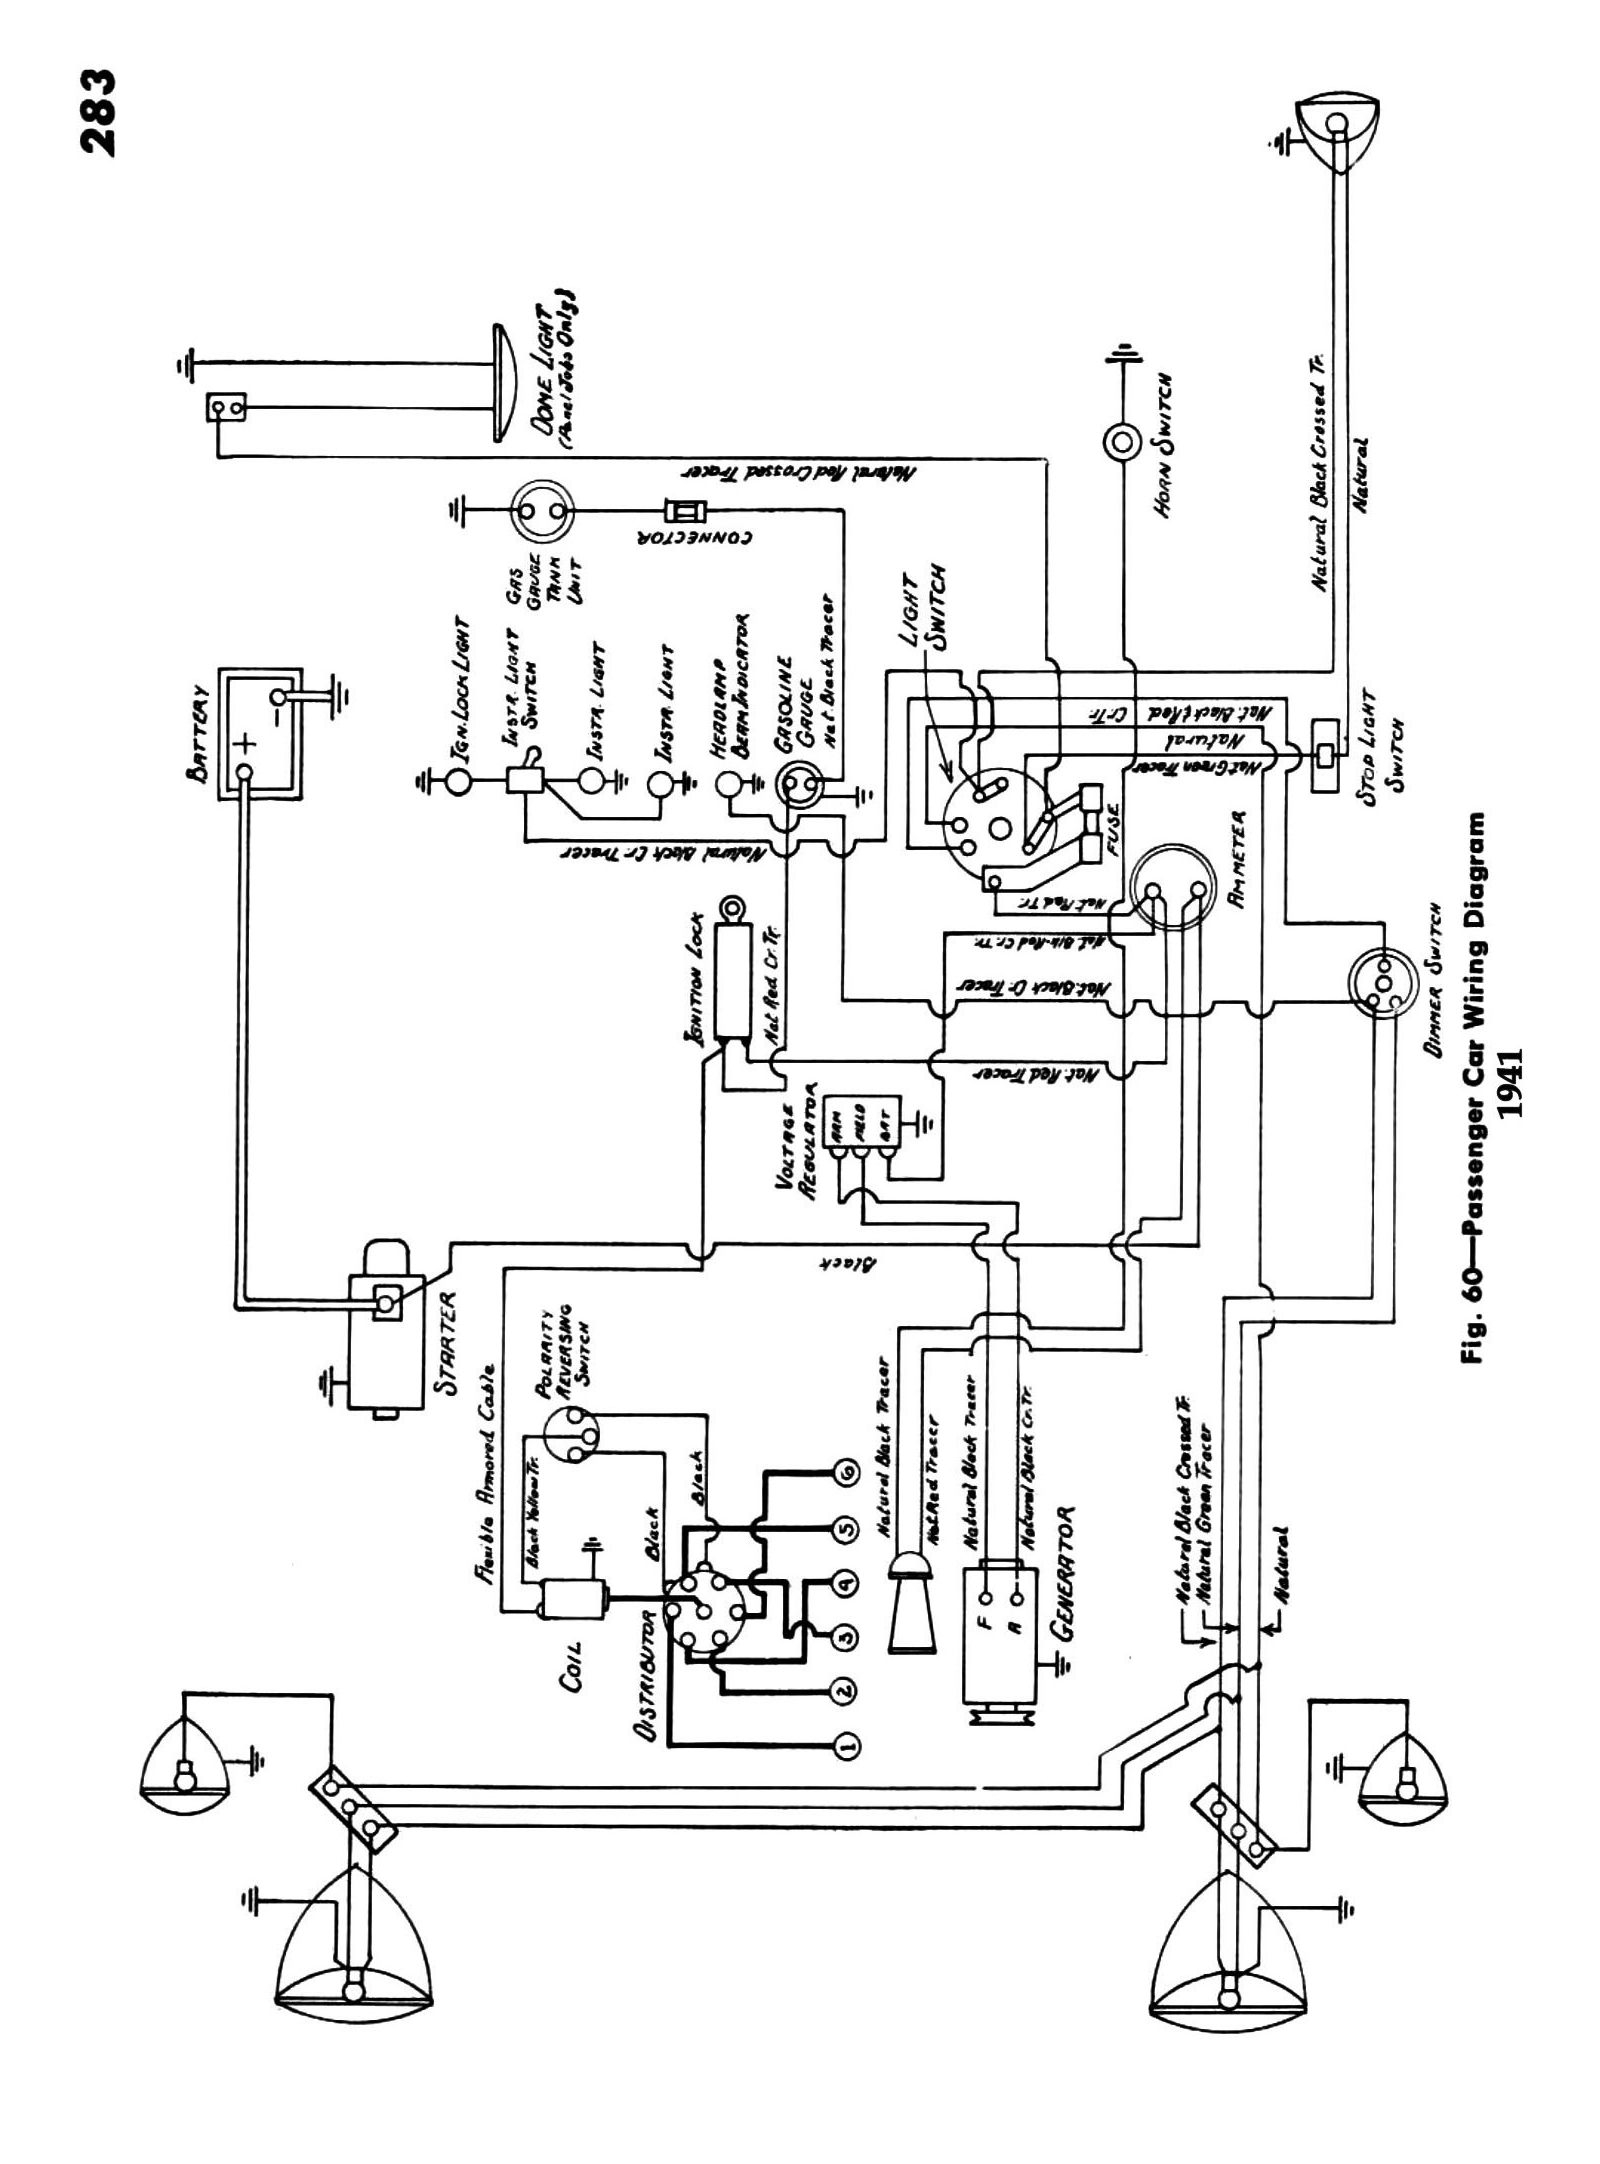 International truck wiring diagram manual download wiring diagram wiring diagram pics detail name international truck wiring diagram manual 1941 passenger swarovskicordoba Choice Image